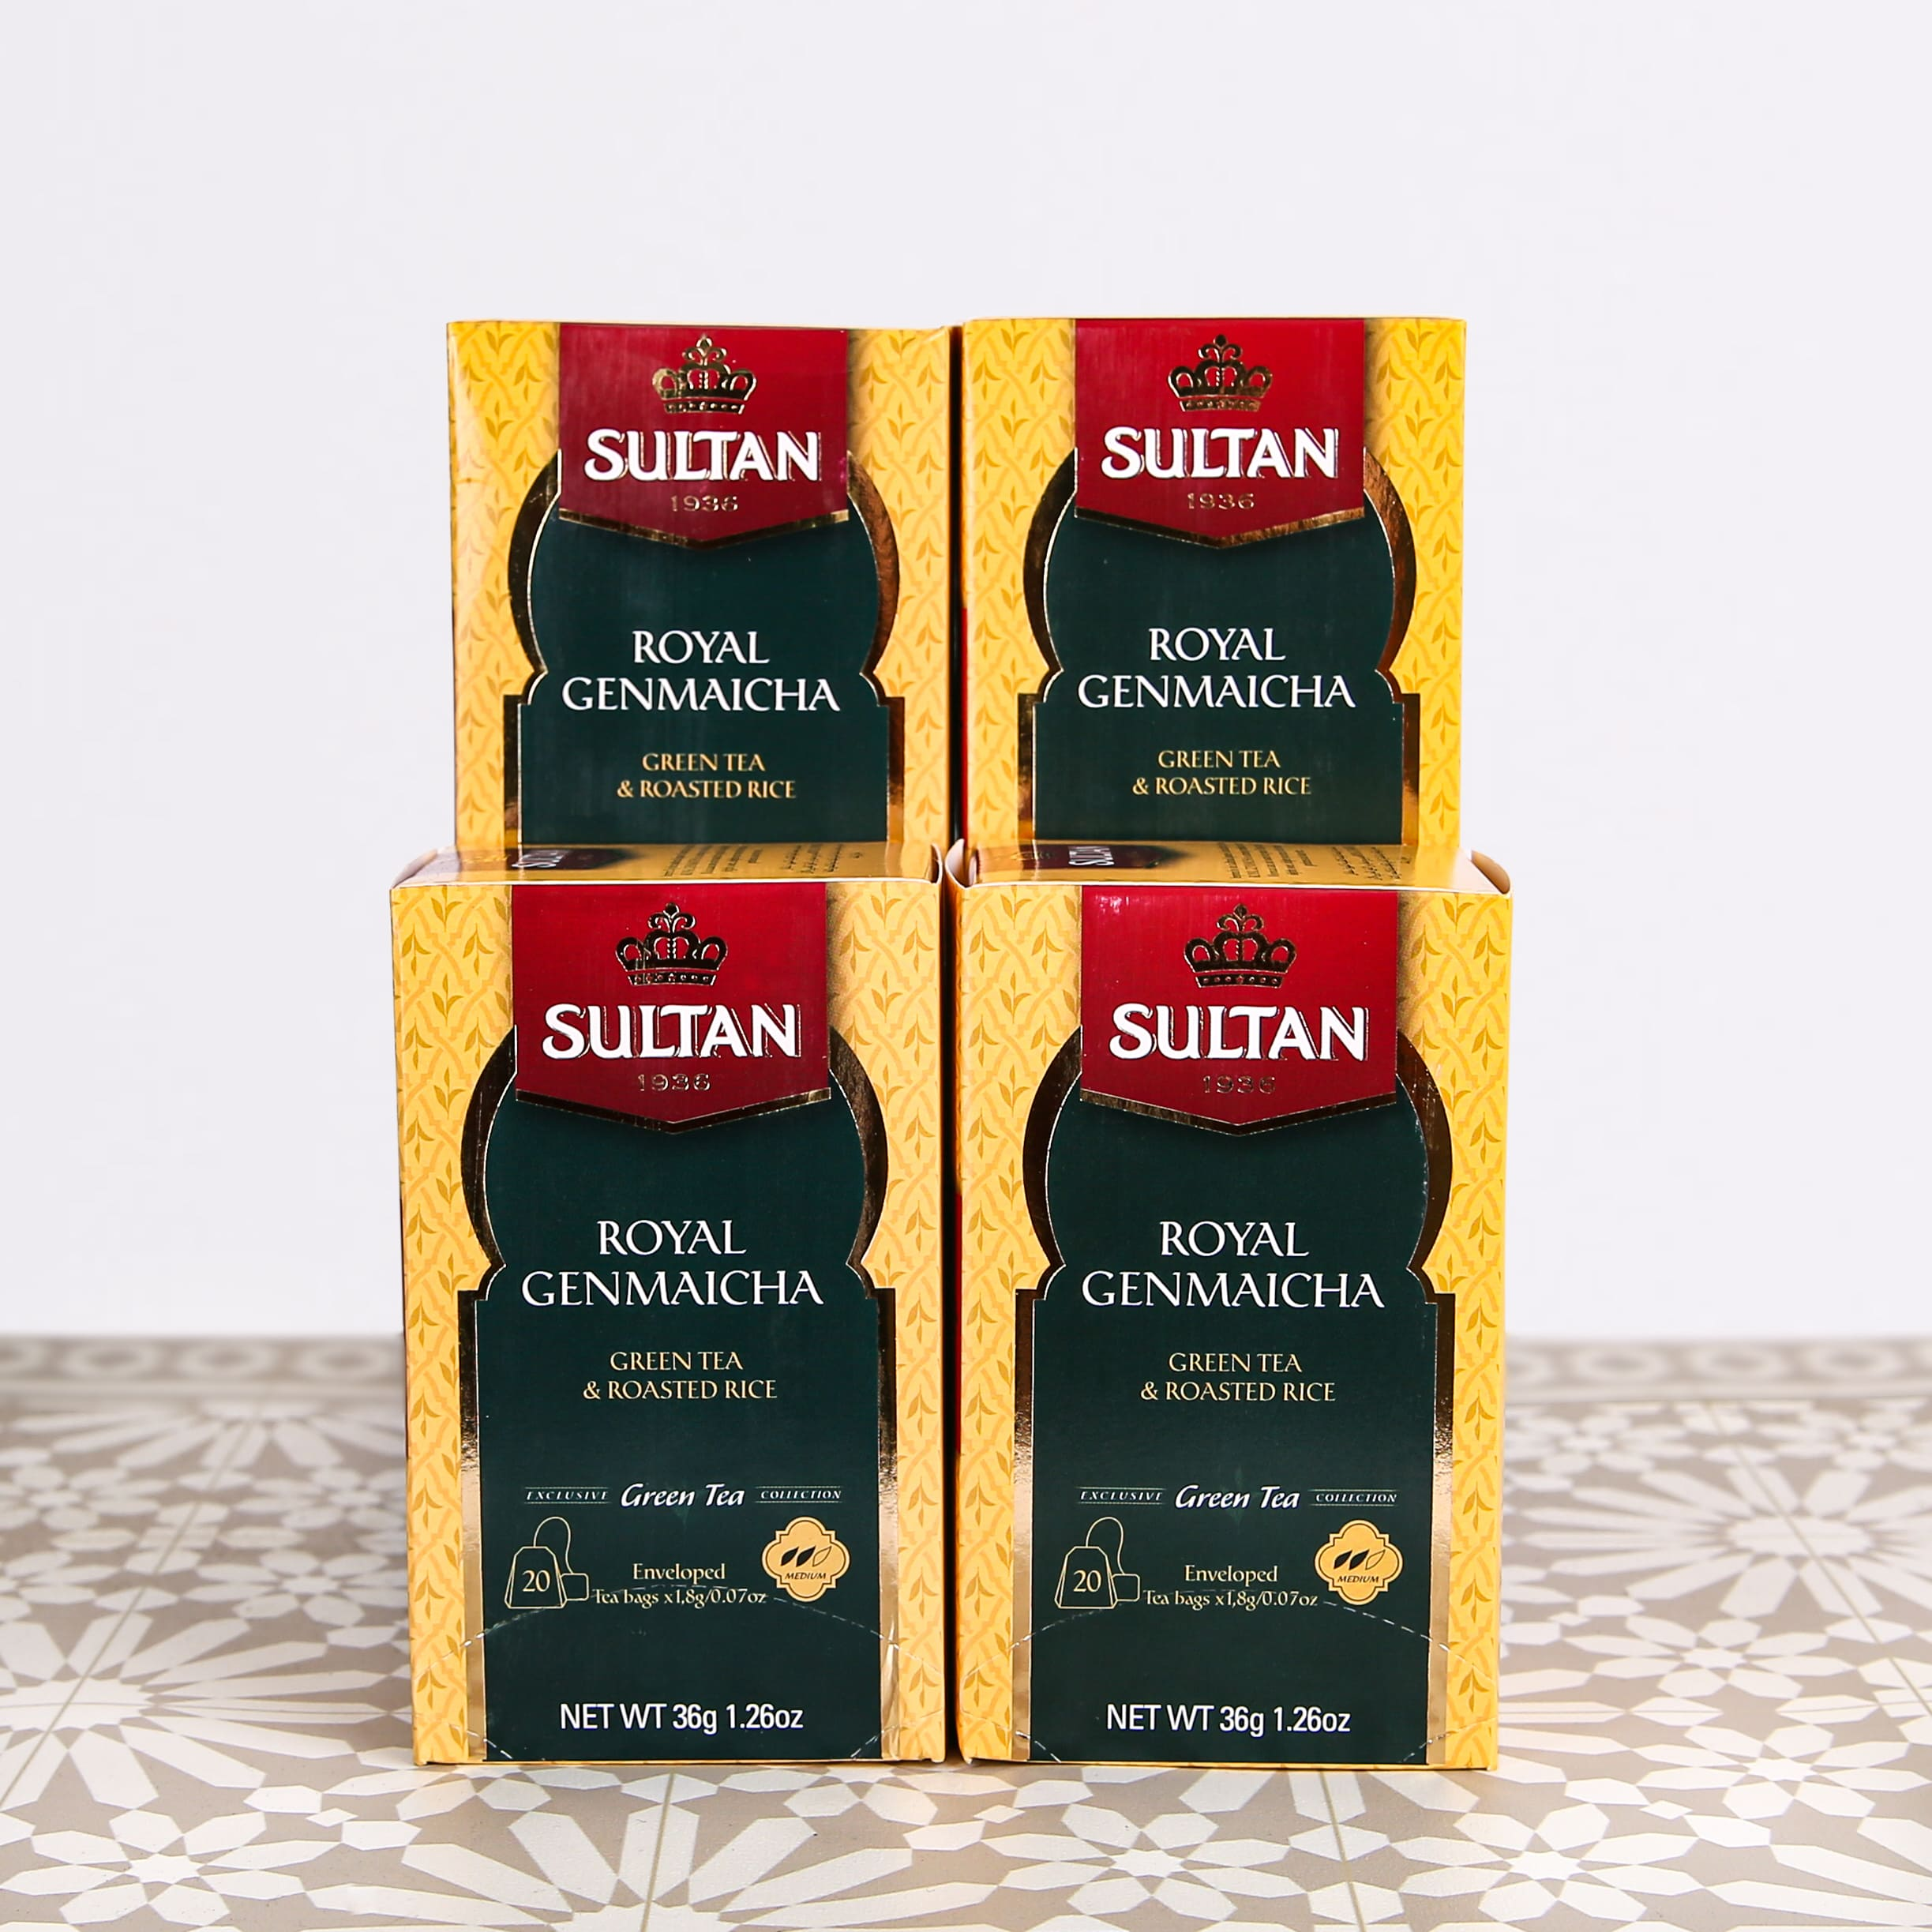 Royal Genmaicha Green Tea With Roasted Rice - 20 Tea Bags